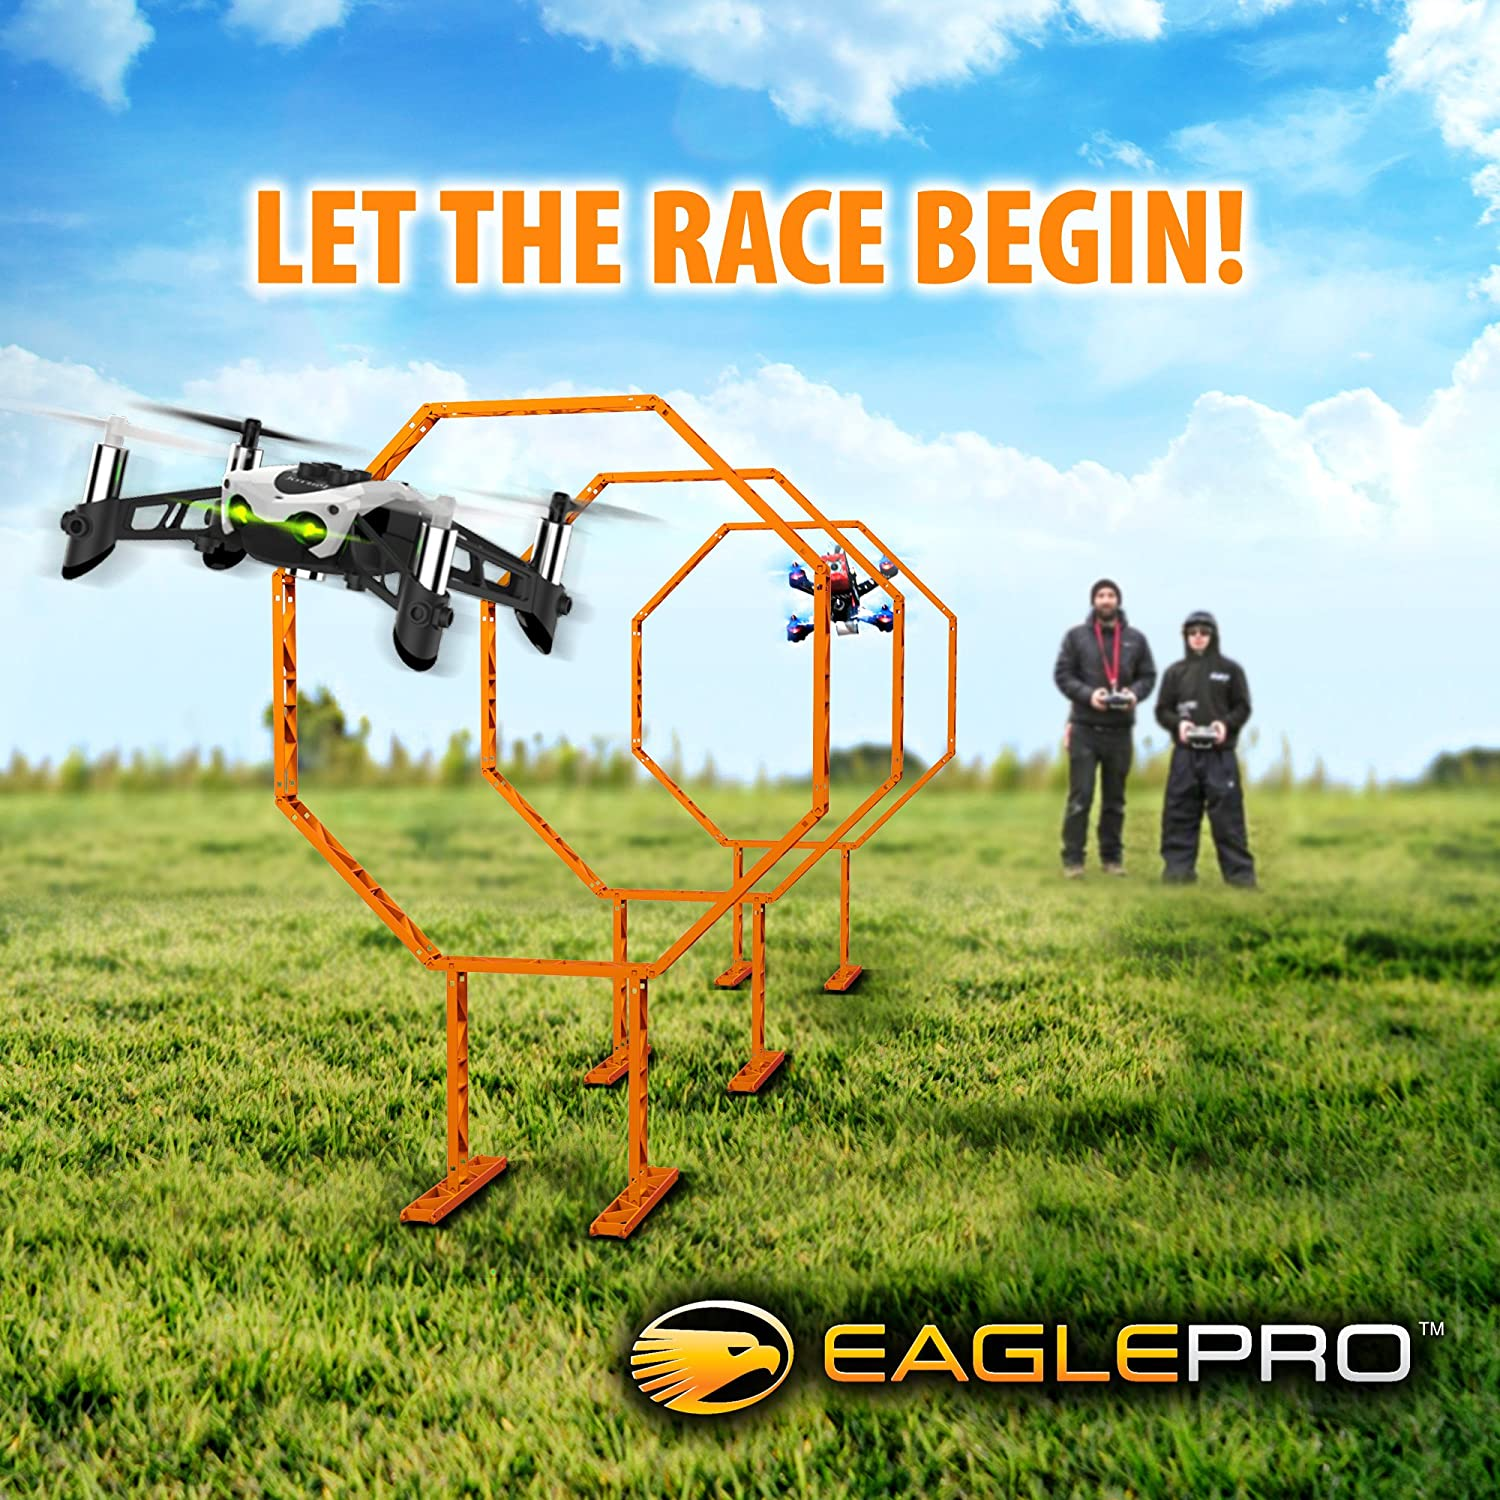 Drone Racing Obstacle Course Easy To Build Racing Drone Kit Create Your Own Drone Racing League Suitable Drone Games For Kid Or Adults Amazon